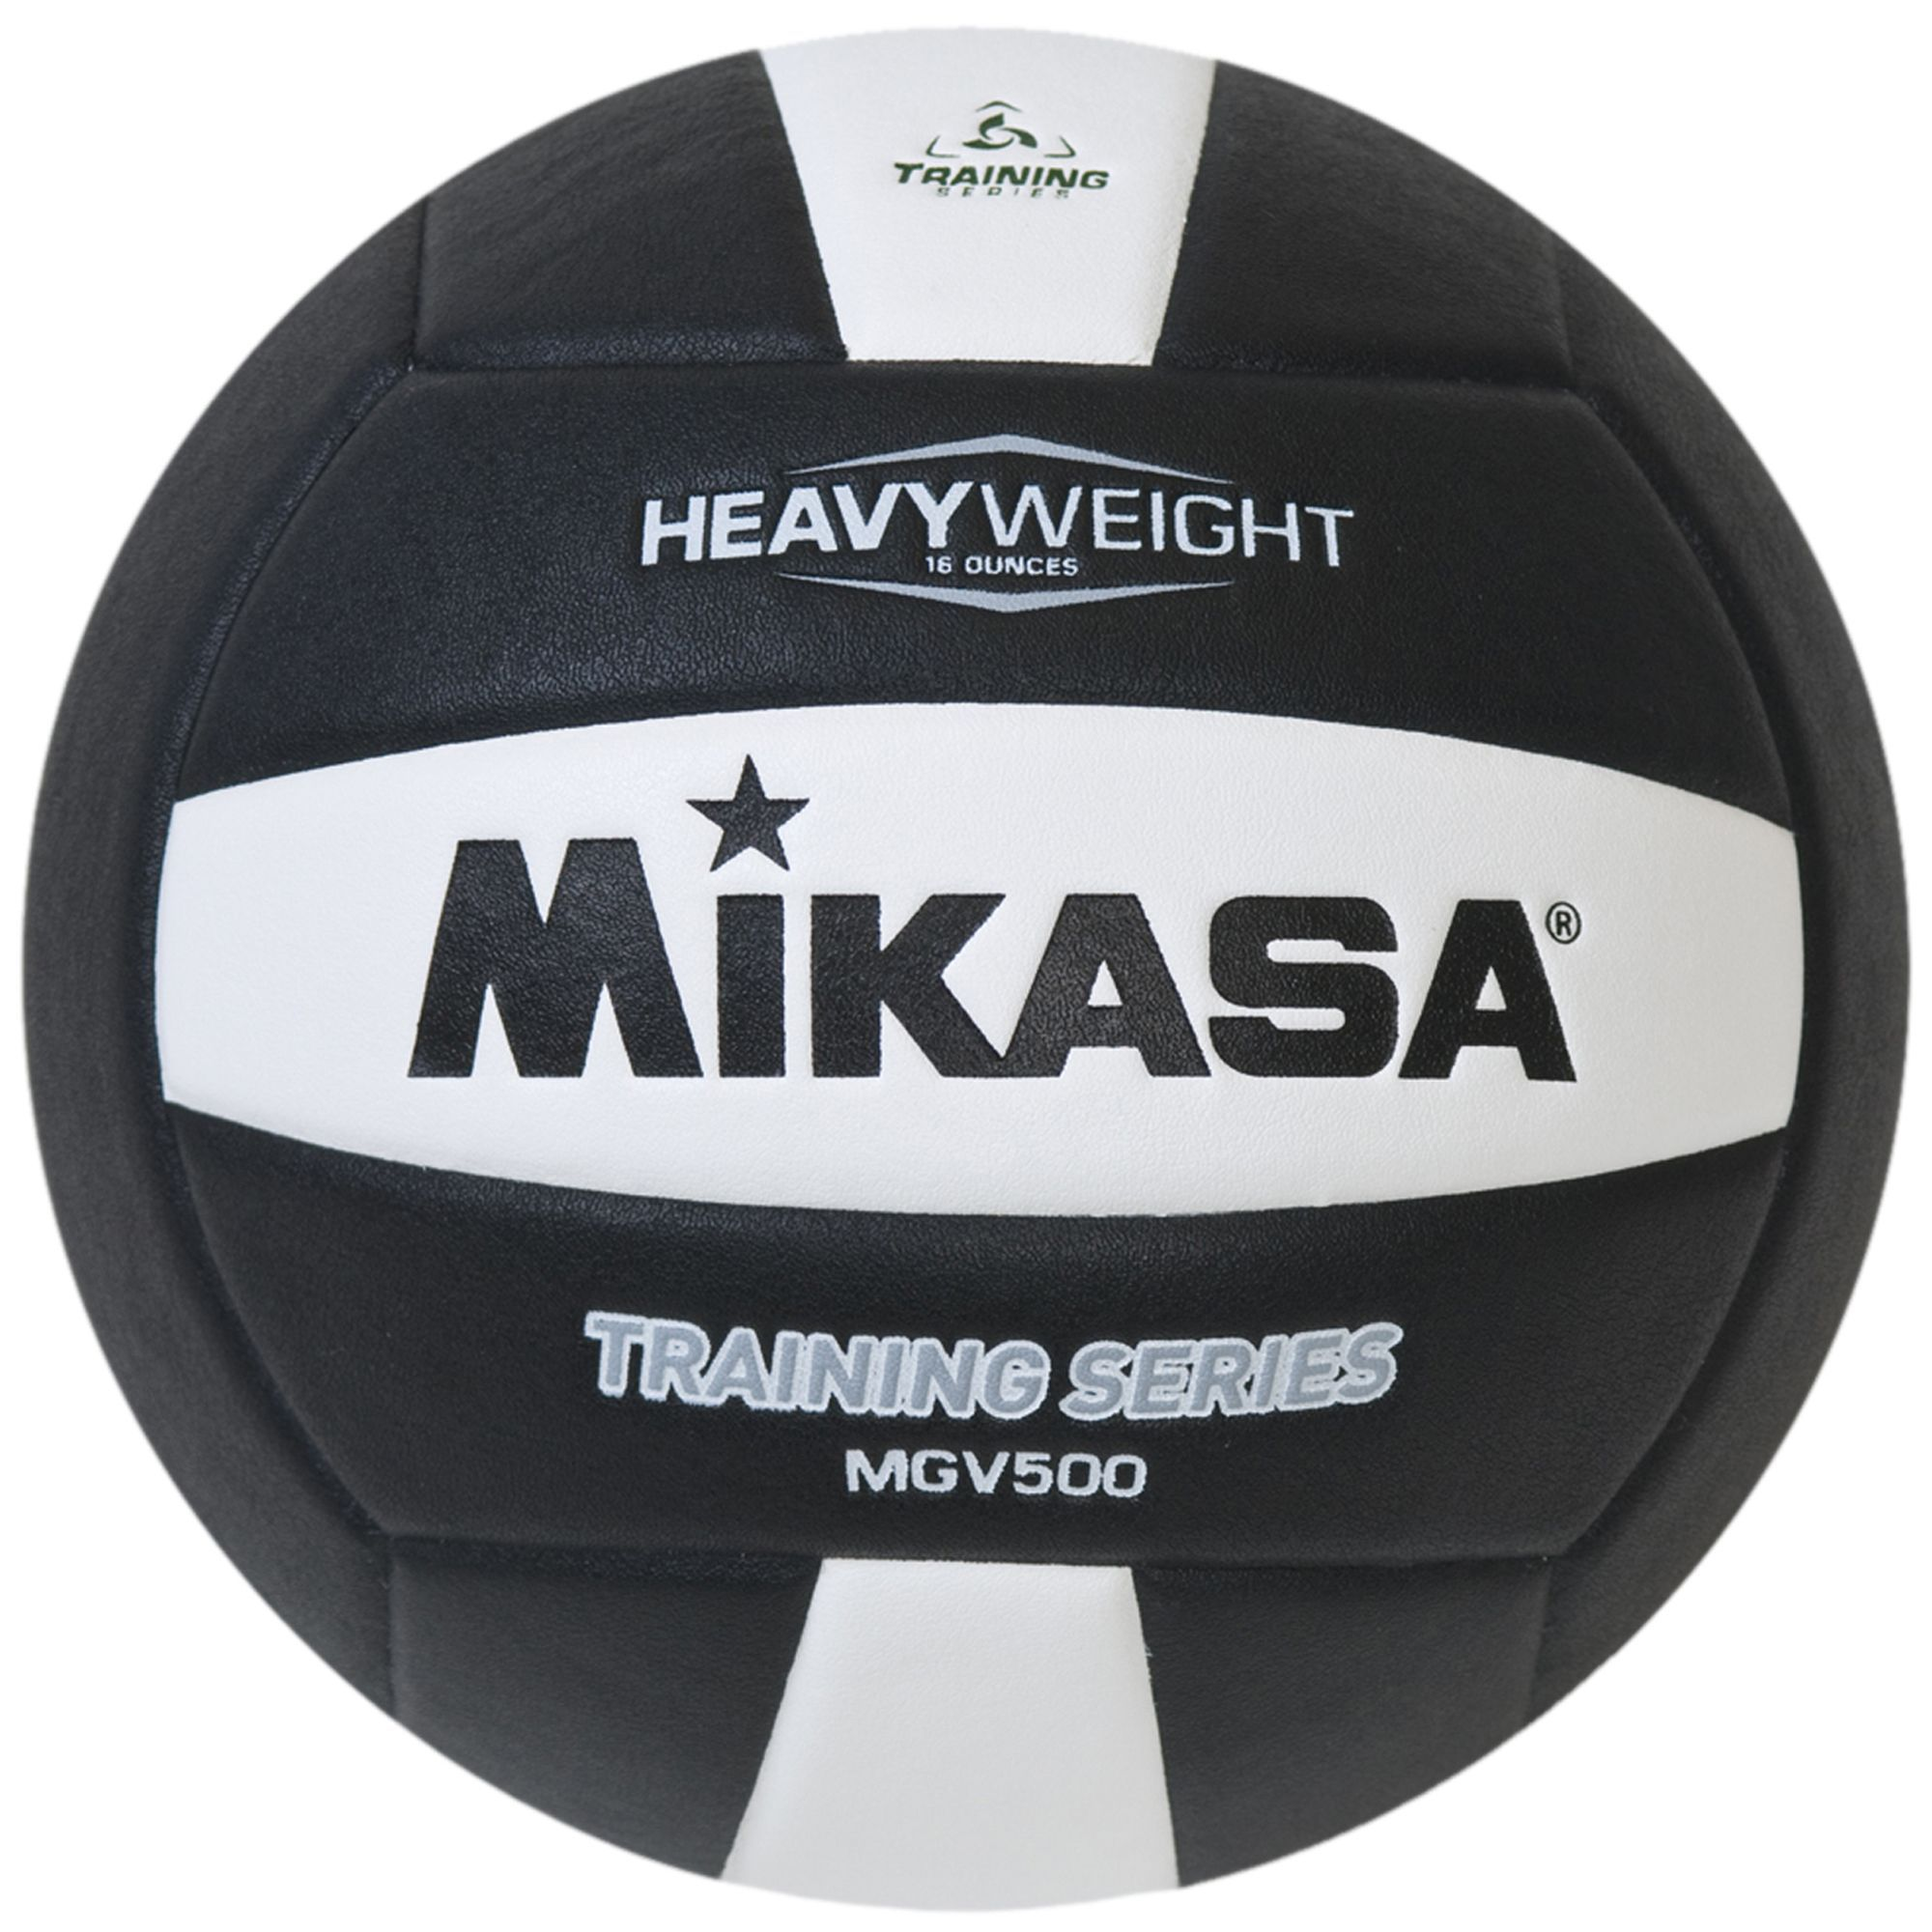 Mikasa Mgv500 Heavy Weight Setter Training Volleyball Size Small In 2020 Mikasa Volleyball Indoor Volleyball